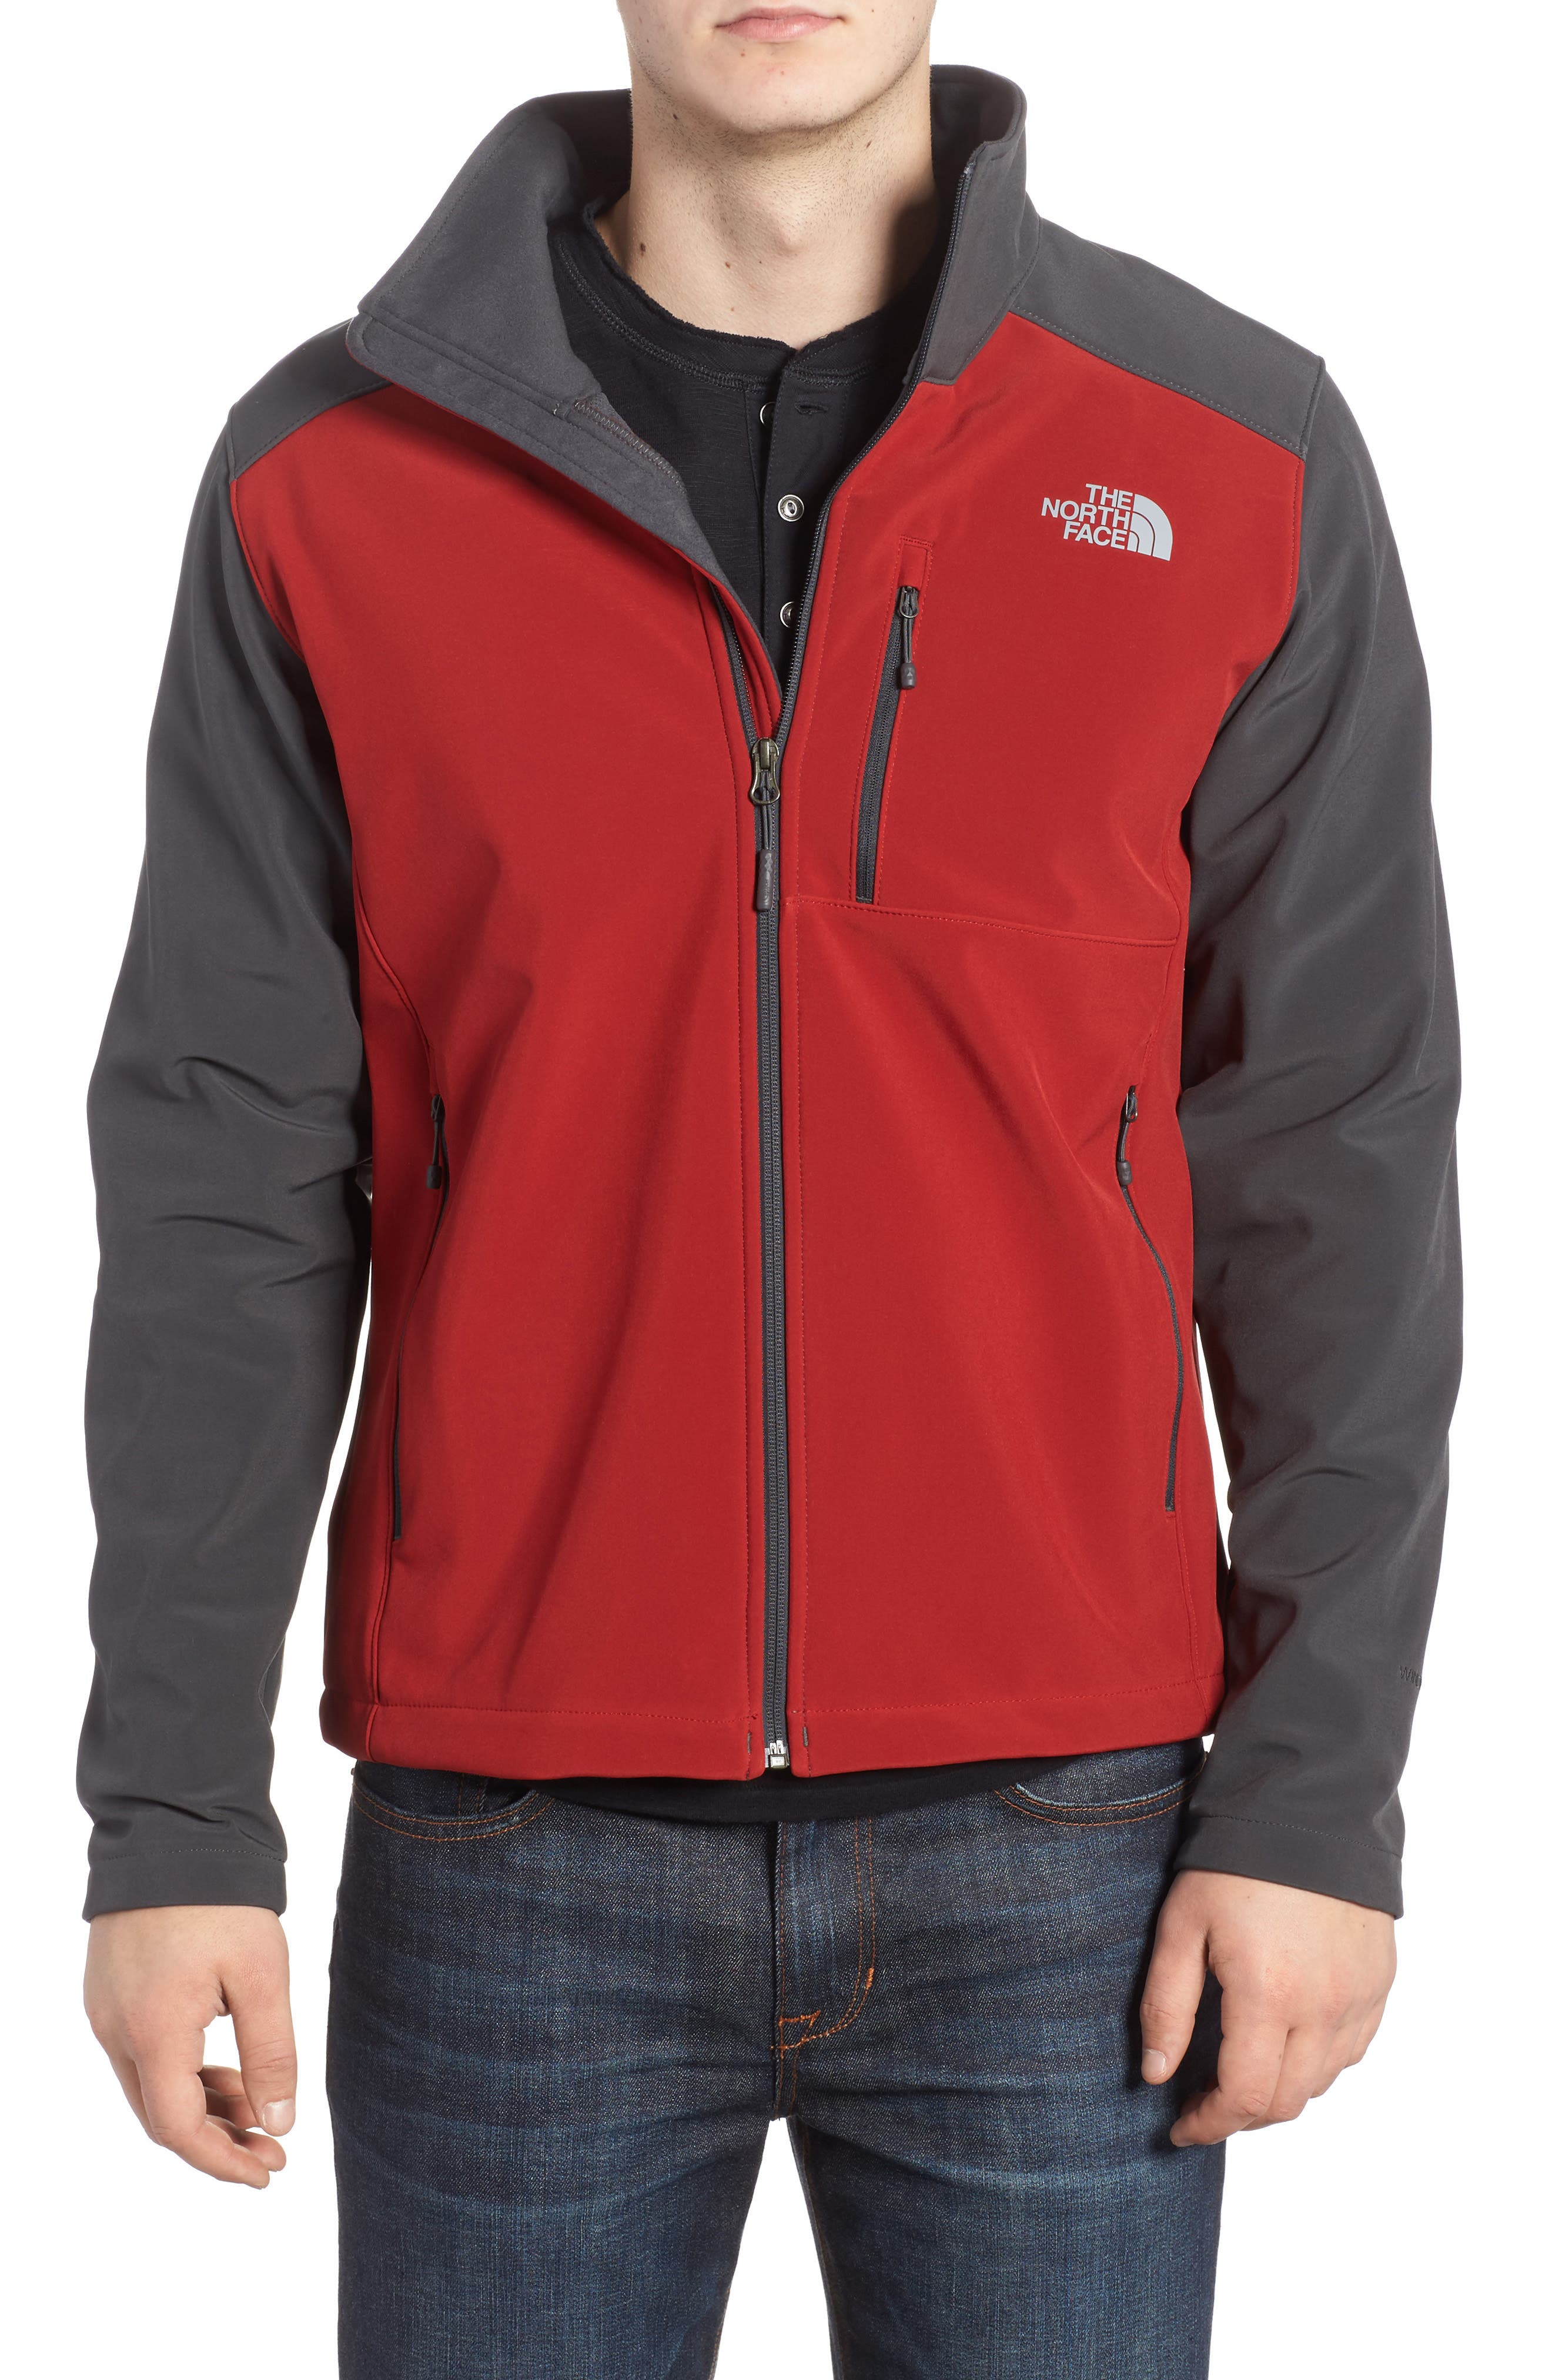 'Apex Bionic 2' Windproof & Water Resistant Soft Shell Jacket,                         Main,                         color, Cardinal Red/ Asphalt Grey